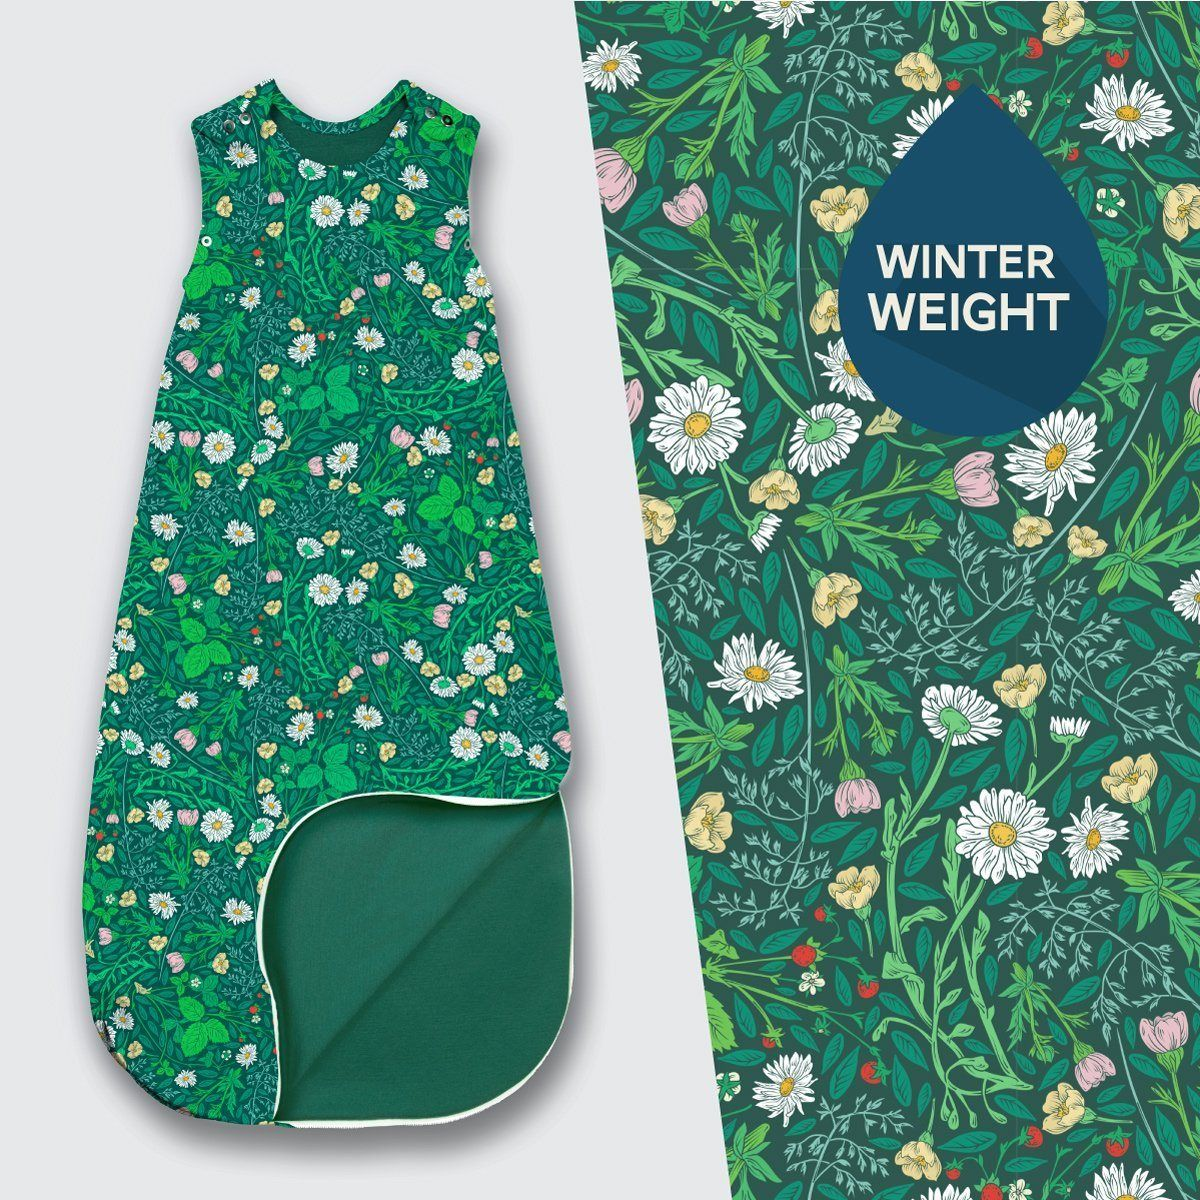 Now The Temperature Has Dropped It S Time To Check Which Tog Your Little One Should Be Wearing For Be Winter Sleeping Bag Baby Sleeping Bag Sleeping Bag Guide